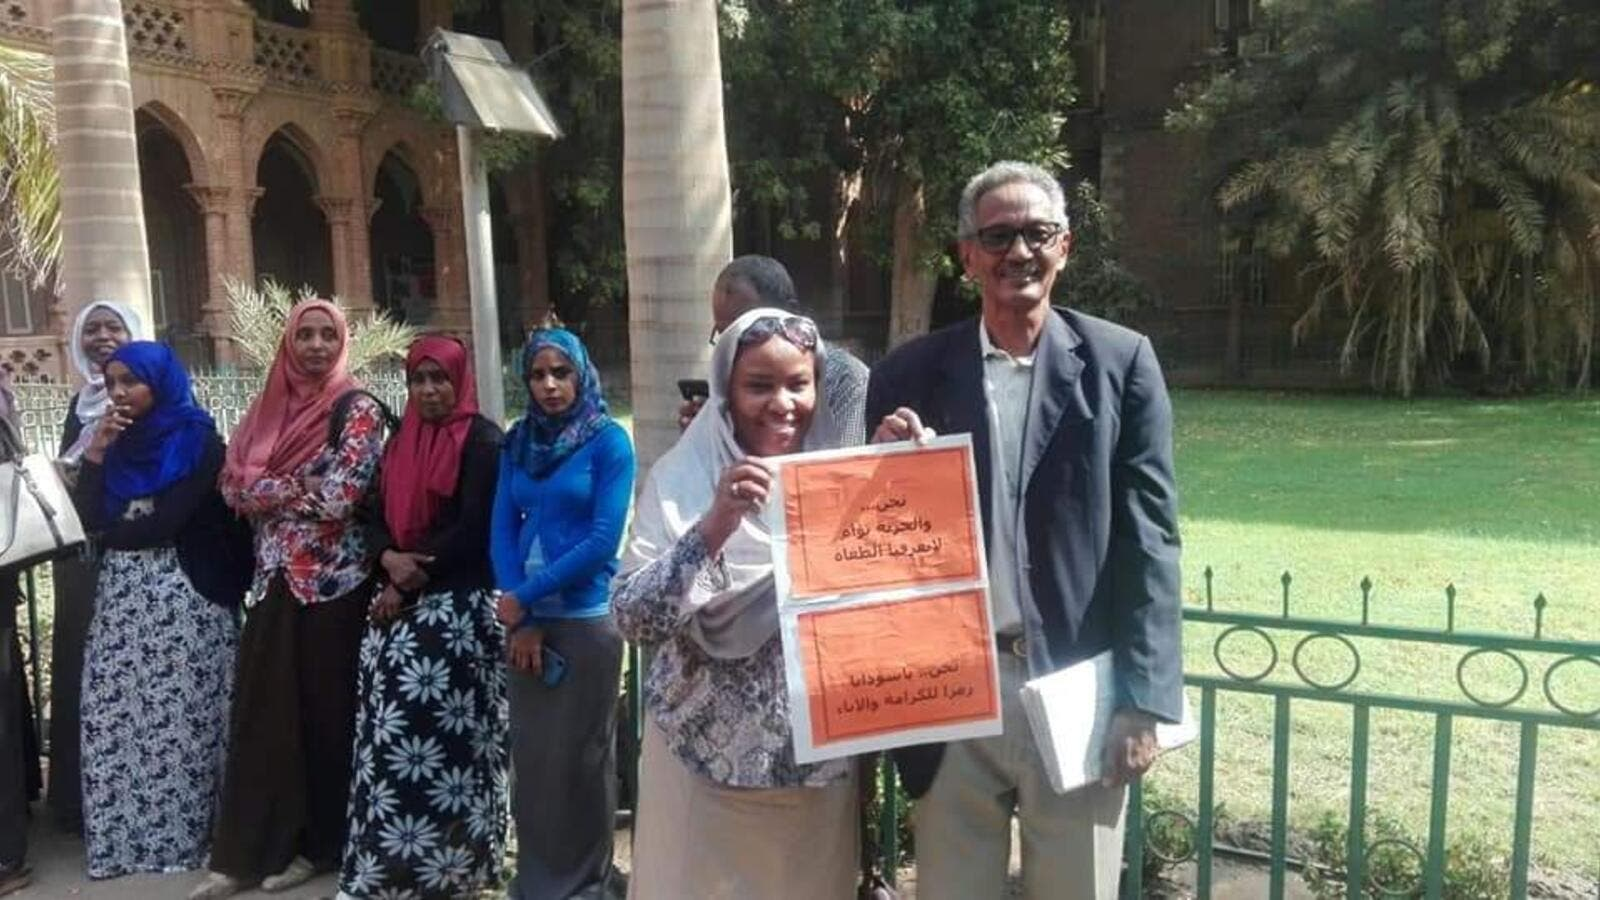 University of Khartoum lecturers have their sit-in on campus grounds this morning (Twitter)